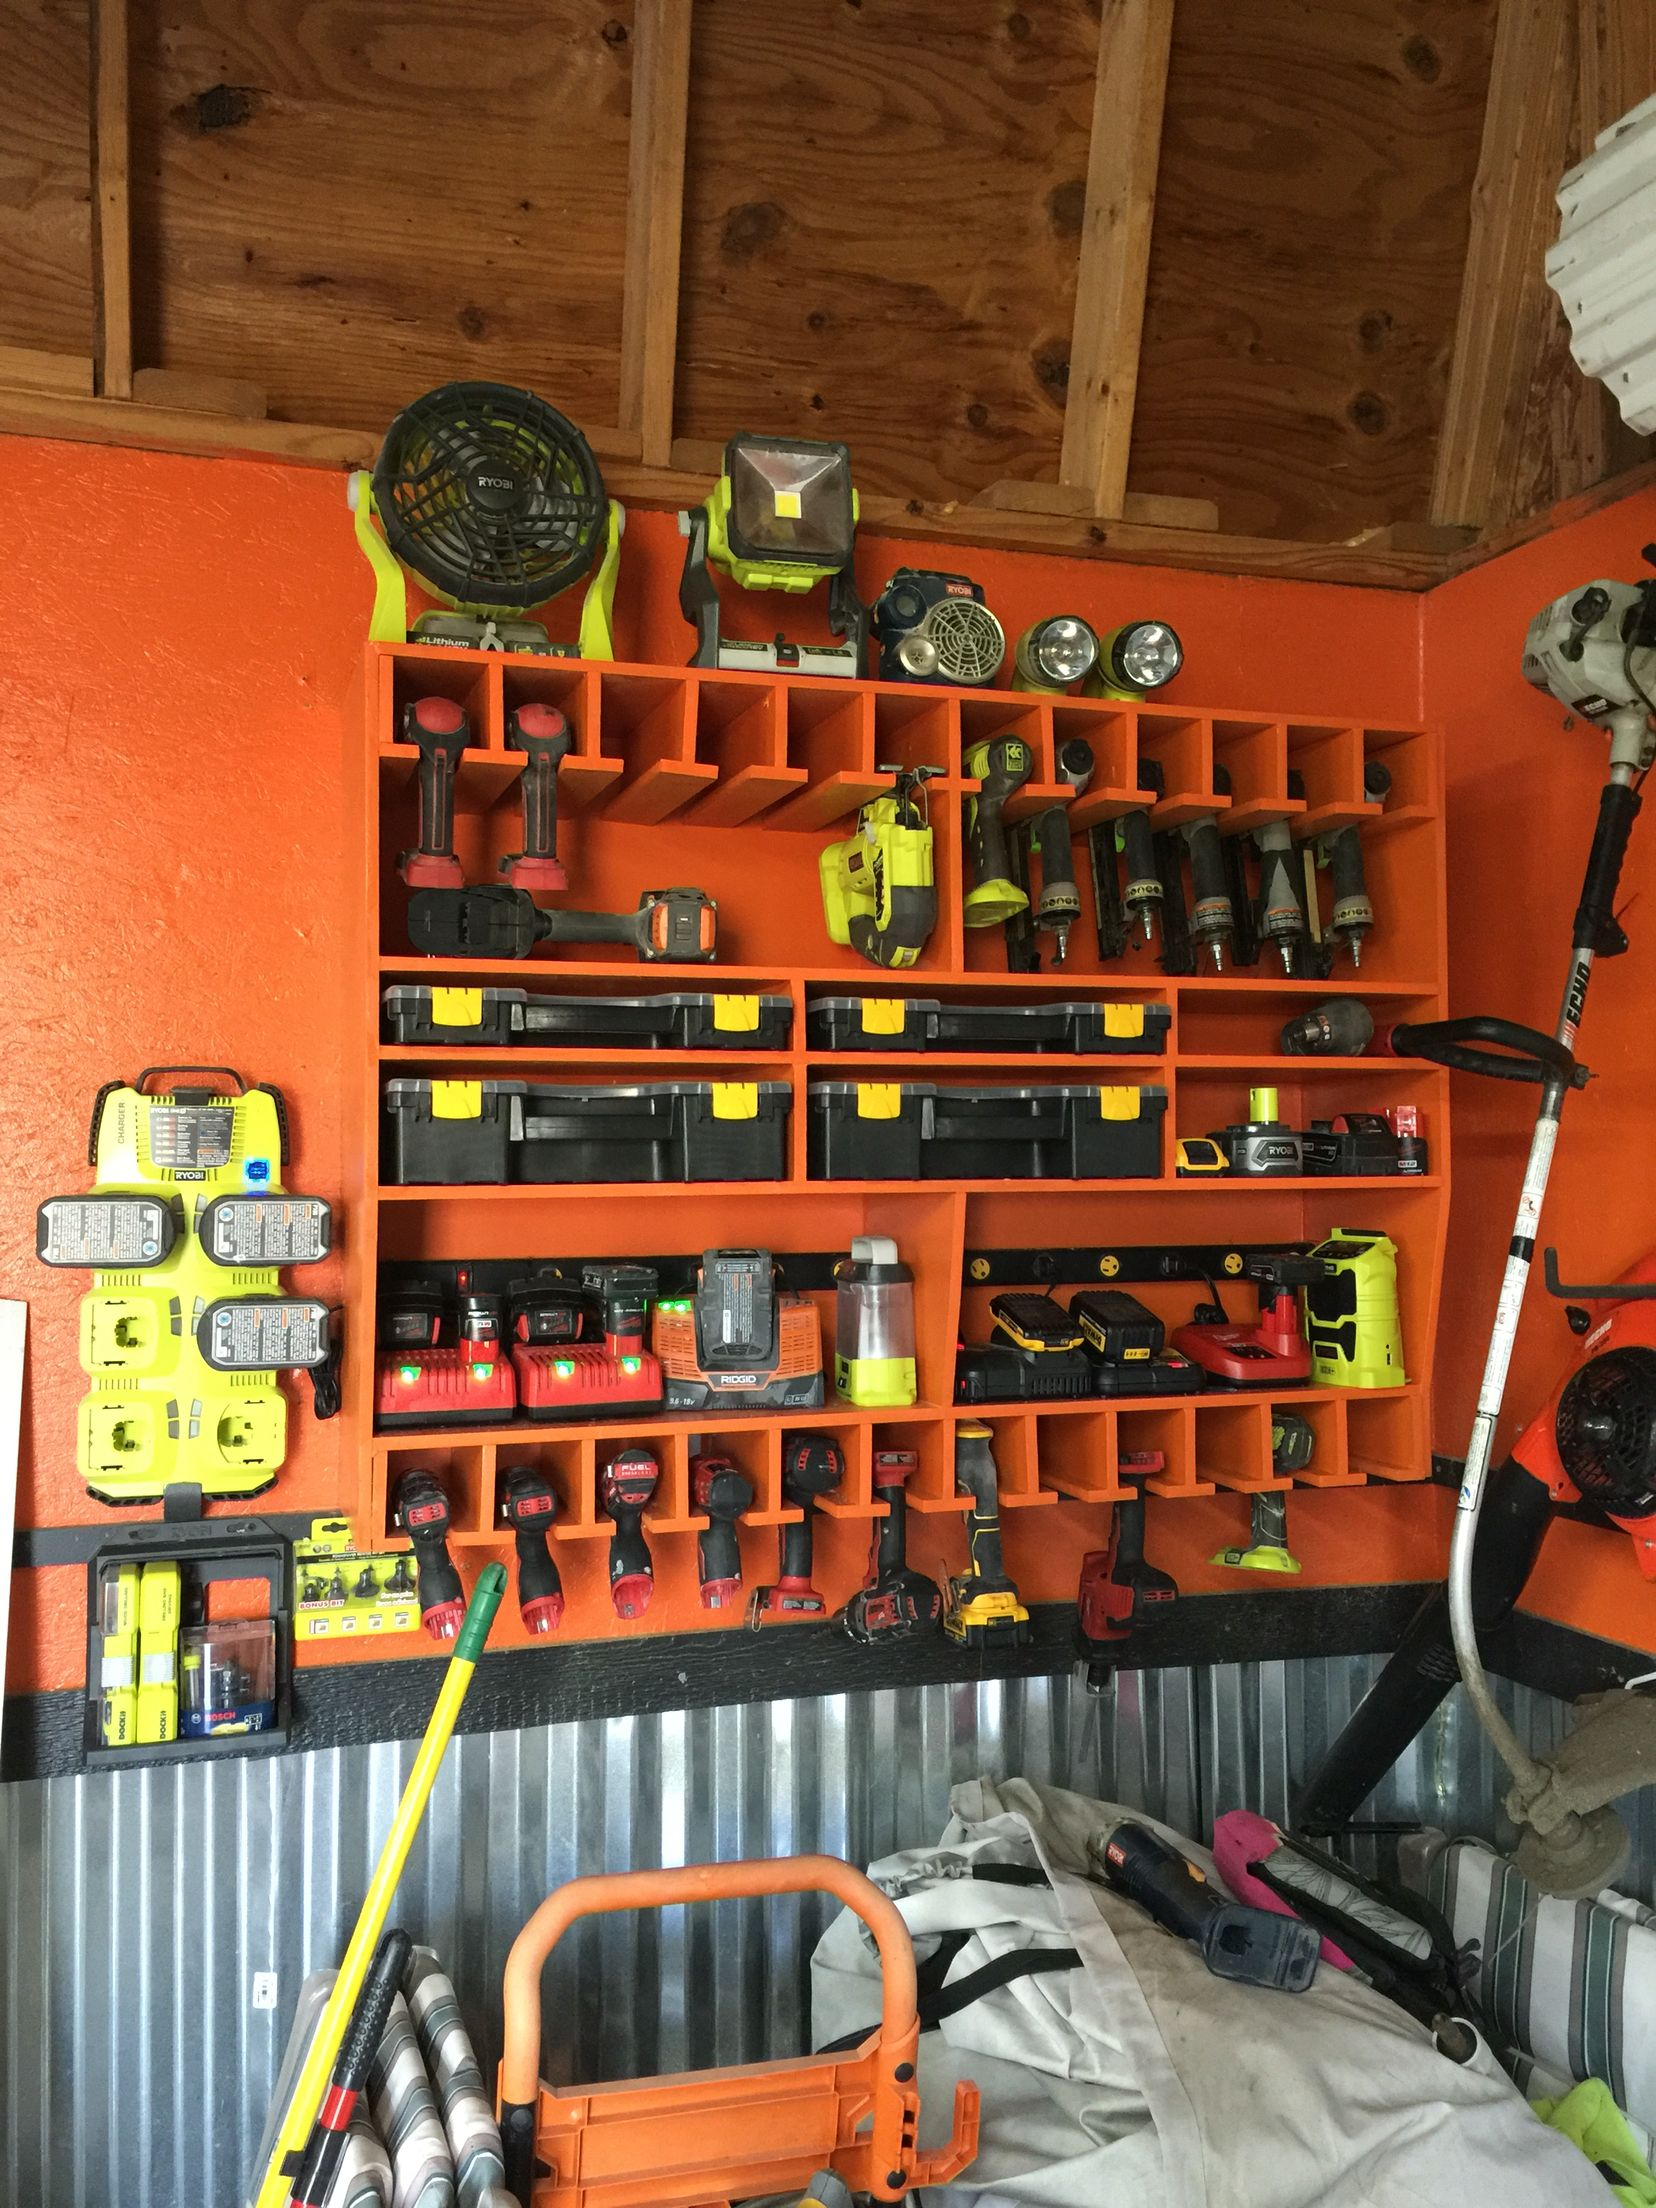 A little tool organization in